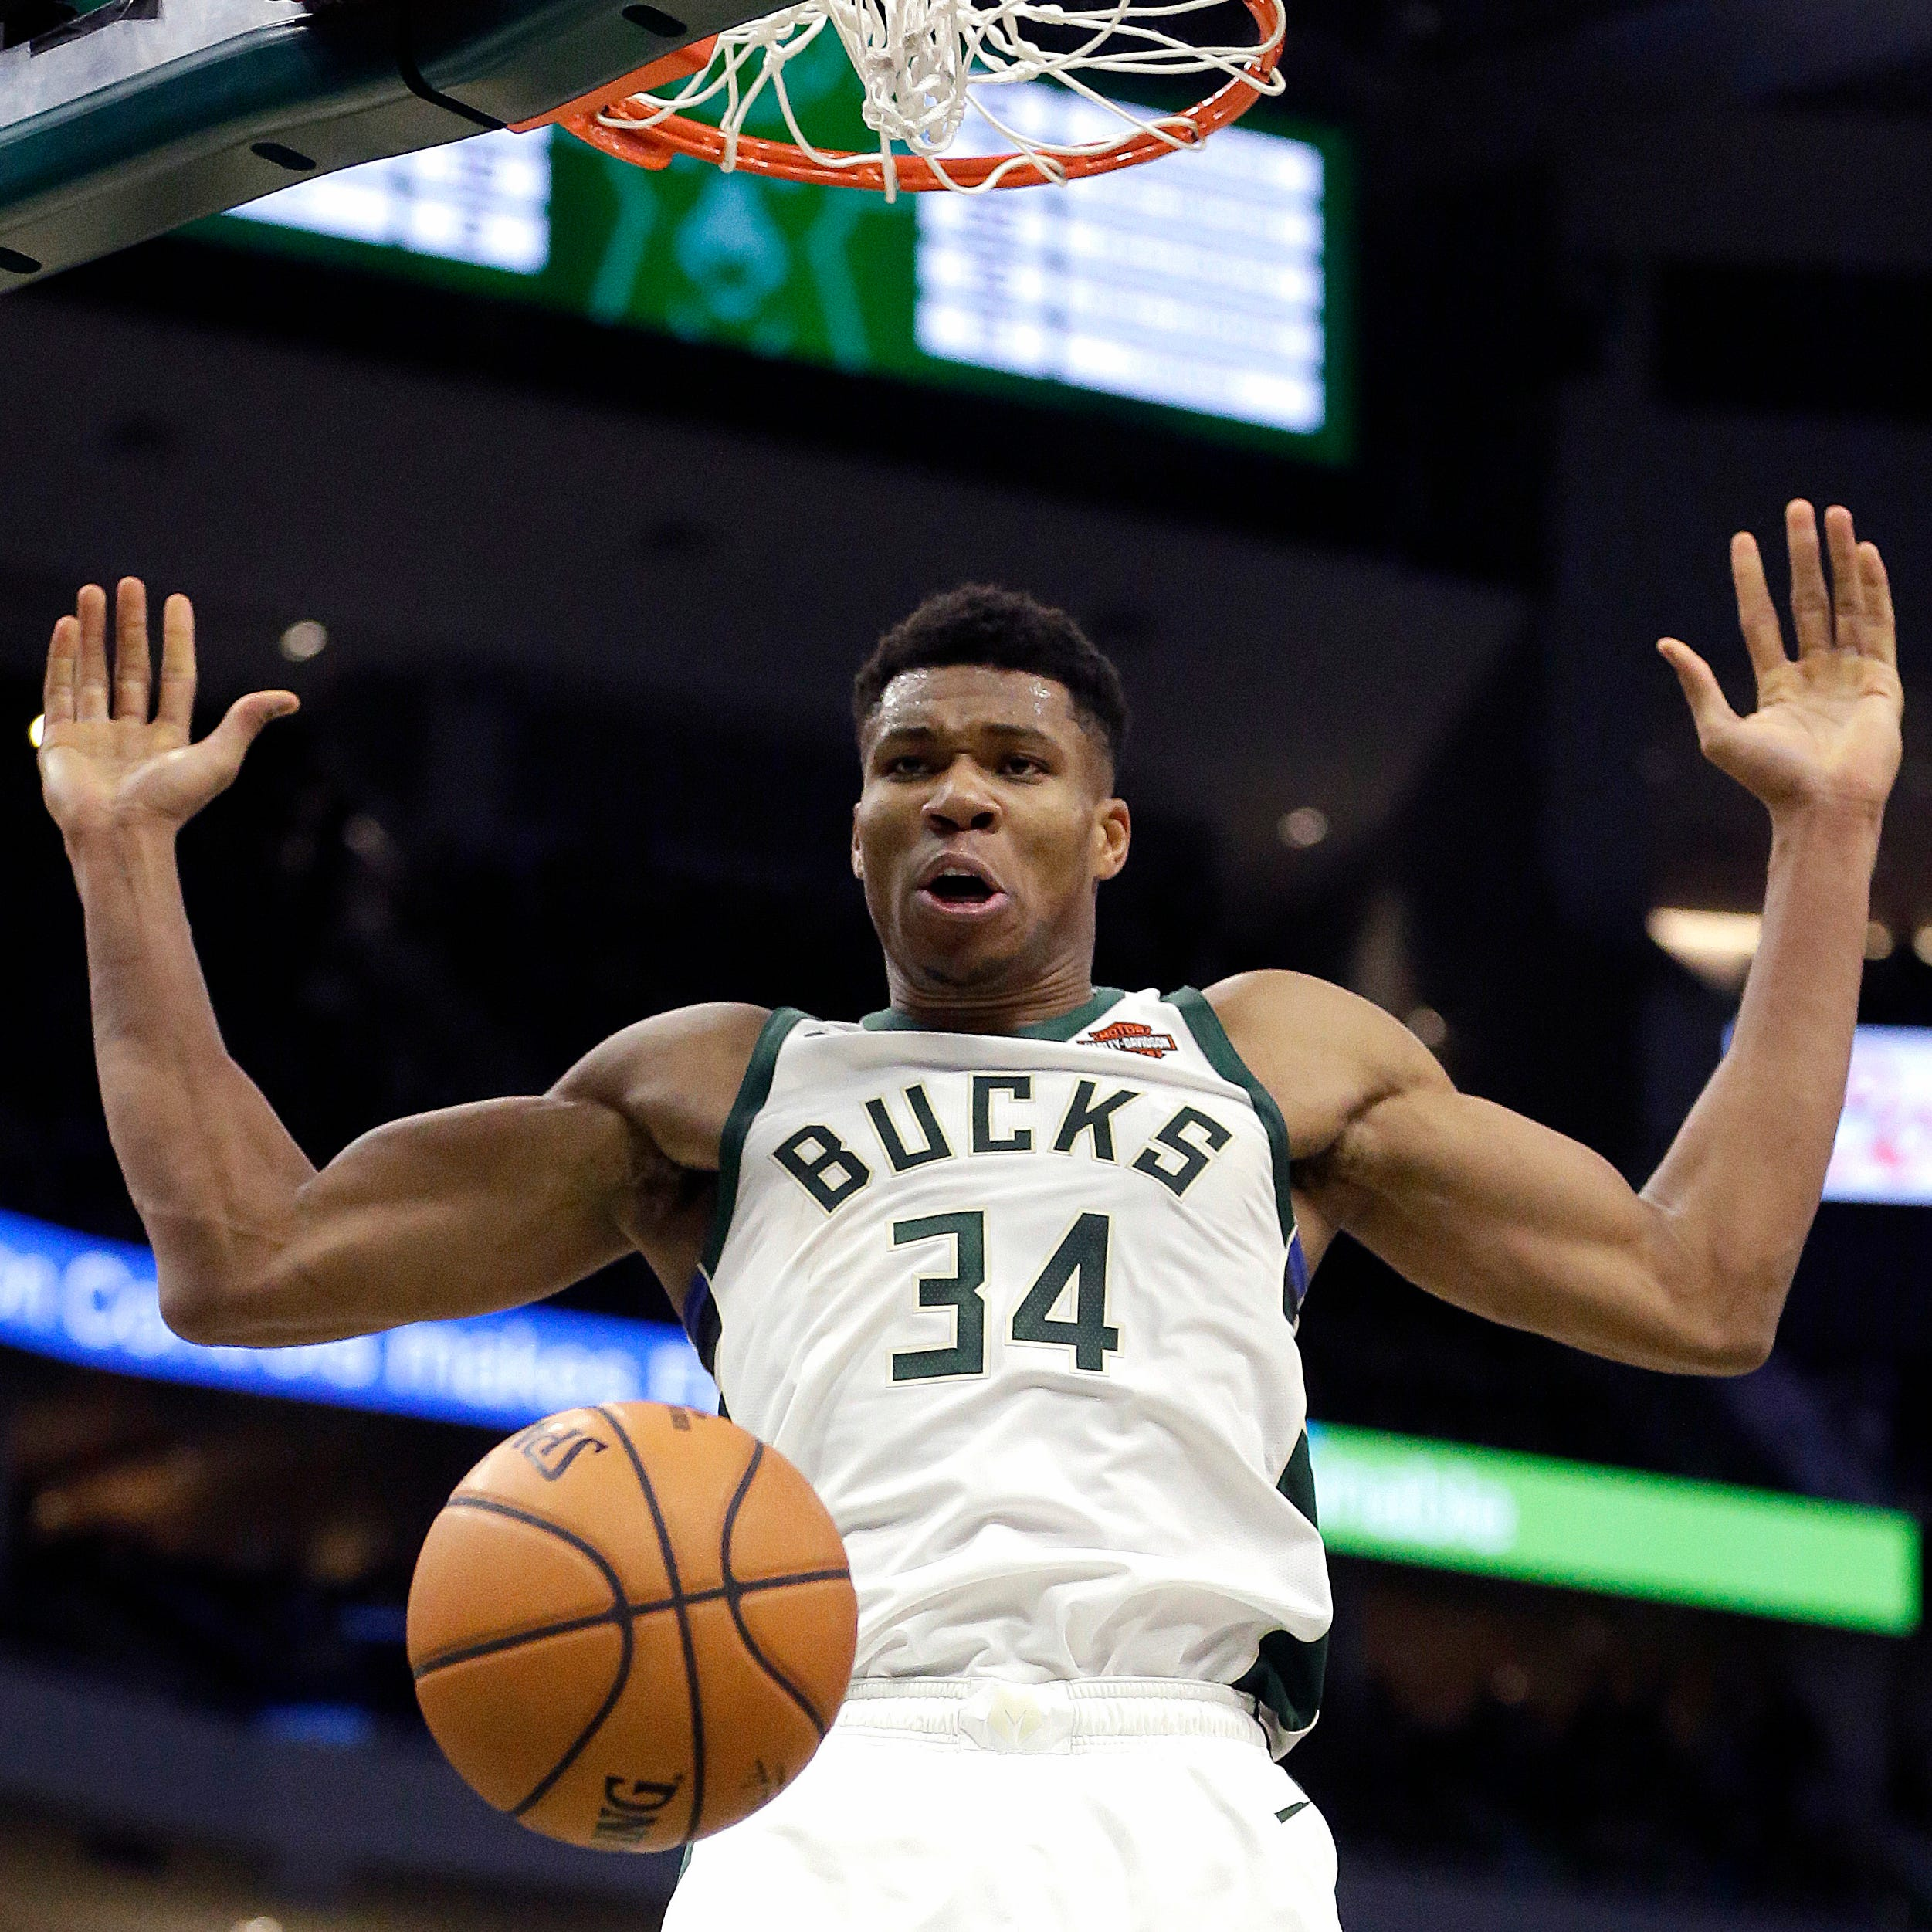 'I'll be a beast out there': Giannis Antetokounmpo putting up big numbers, but just getting started